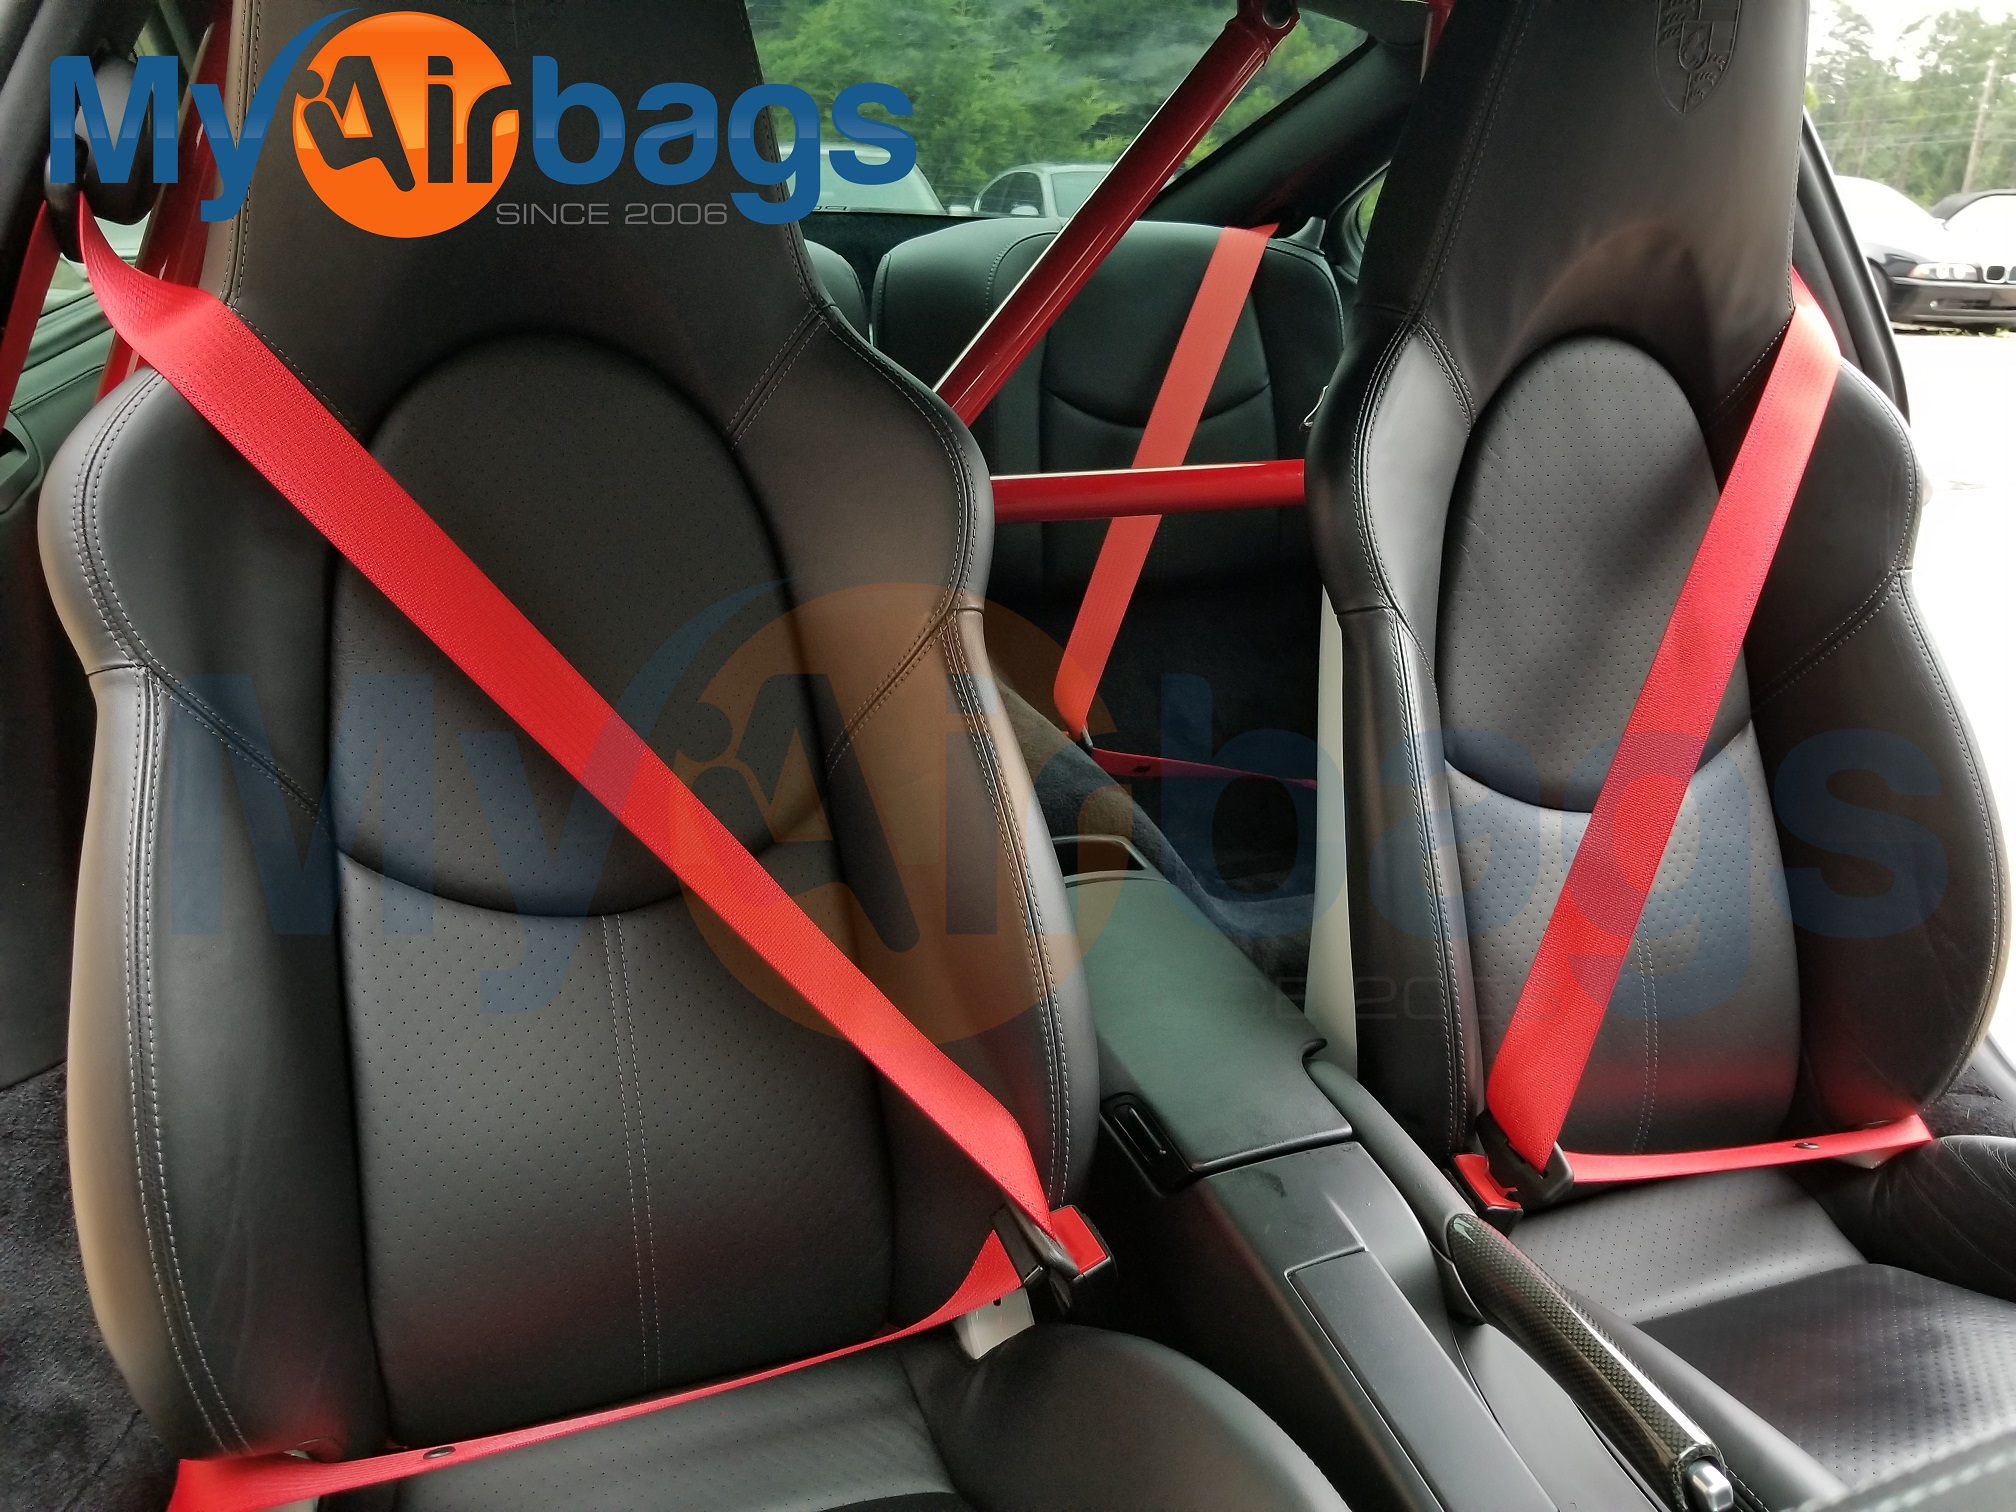 Red-Seat-Belts-on-Porsche-911-Turbo-Racing-Custom-Color-Belts-01.jpg